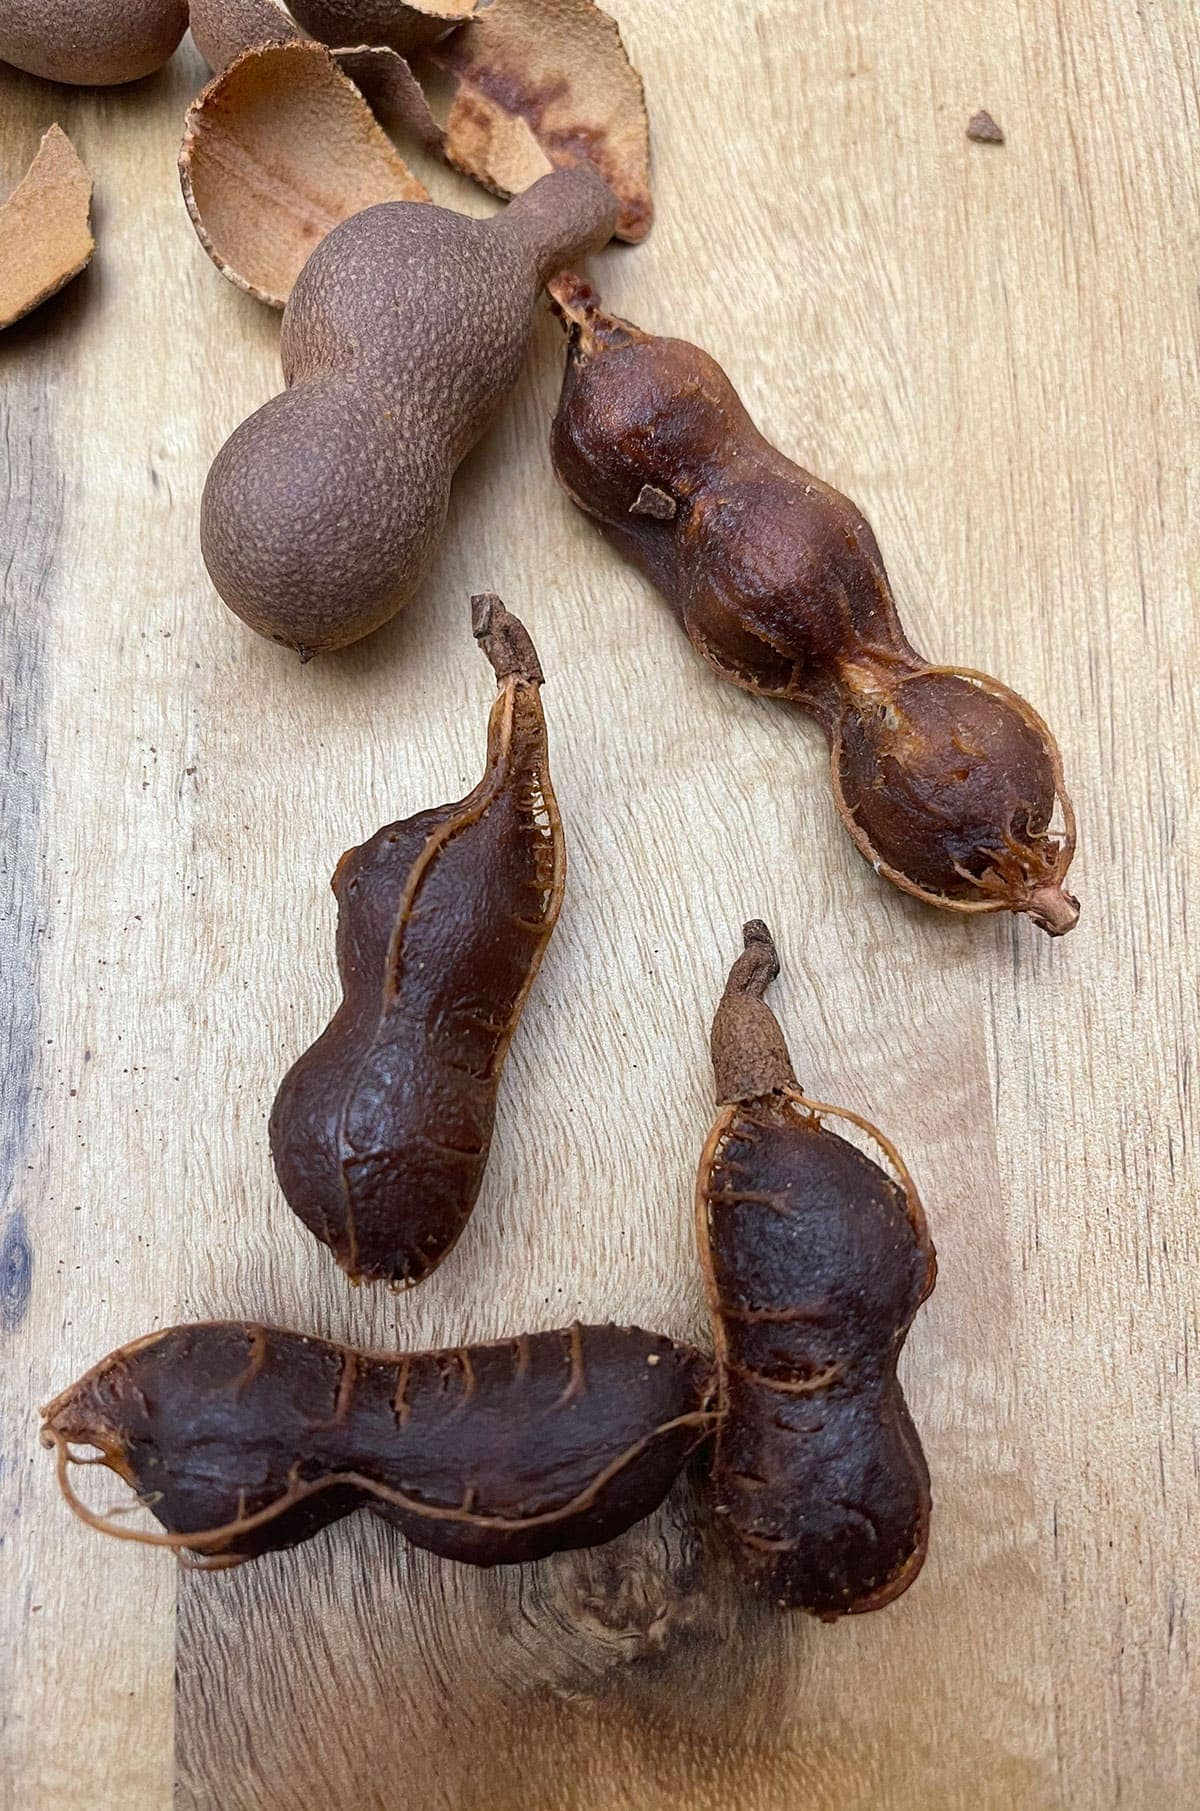 how to eat tamarind